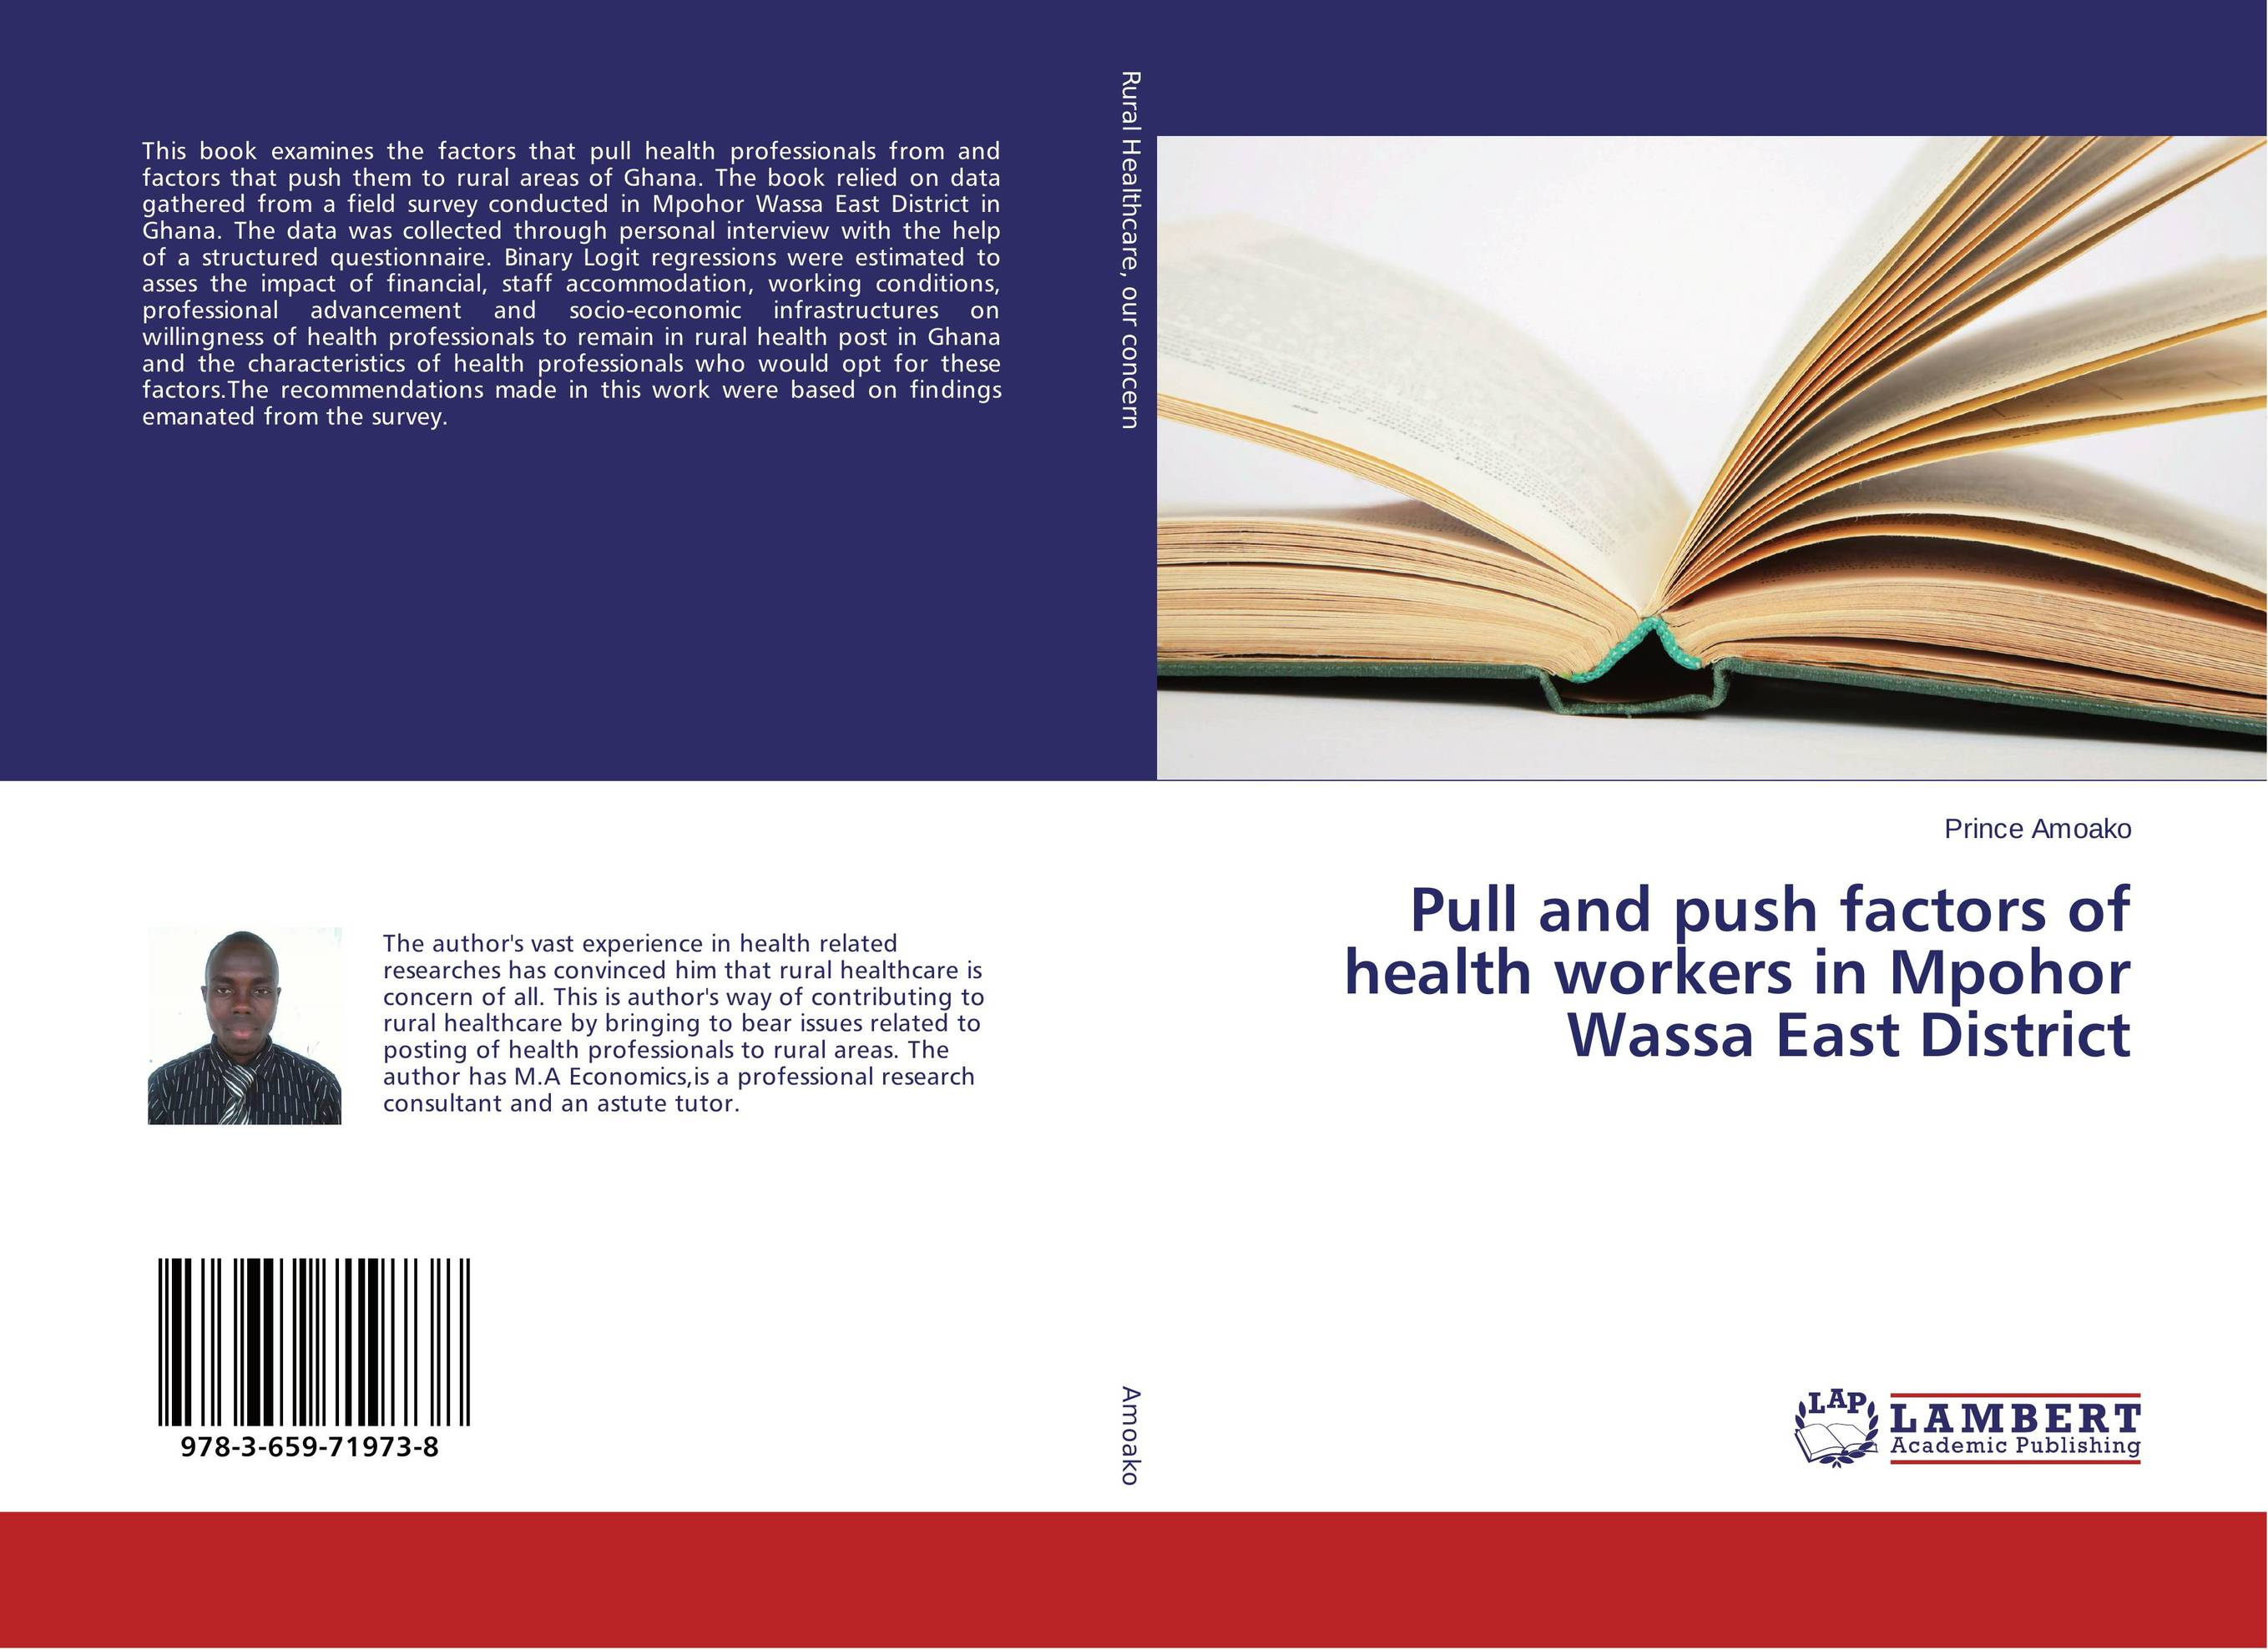 Pull and push factors of health workers in Mpohor Wassa East District